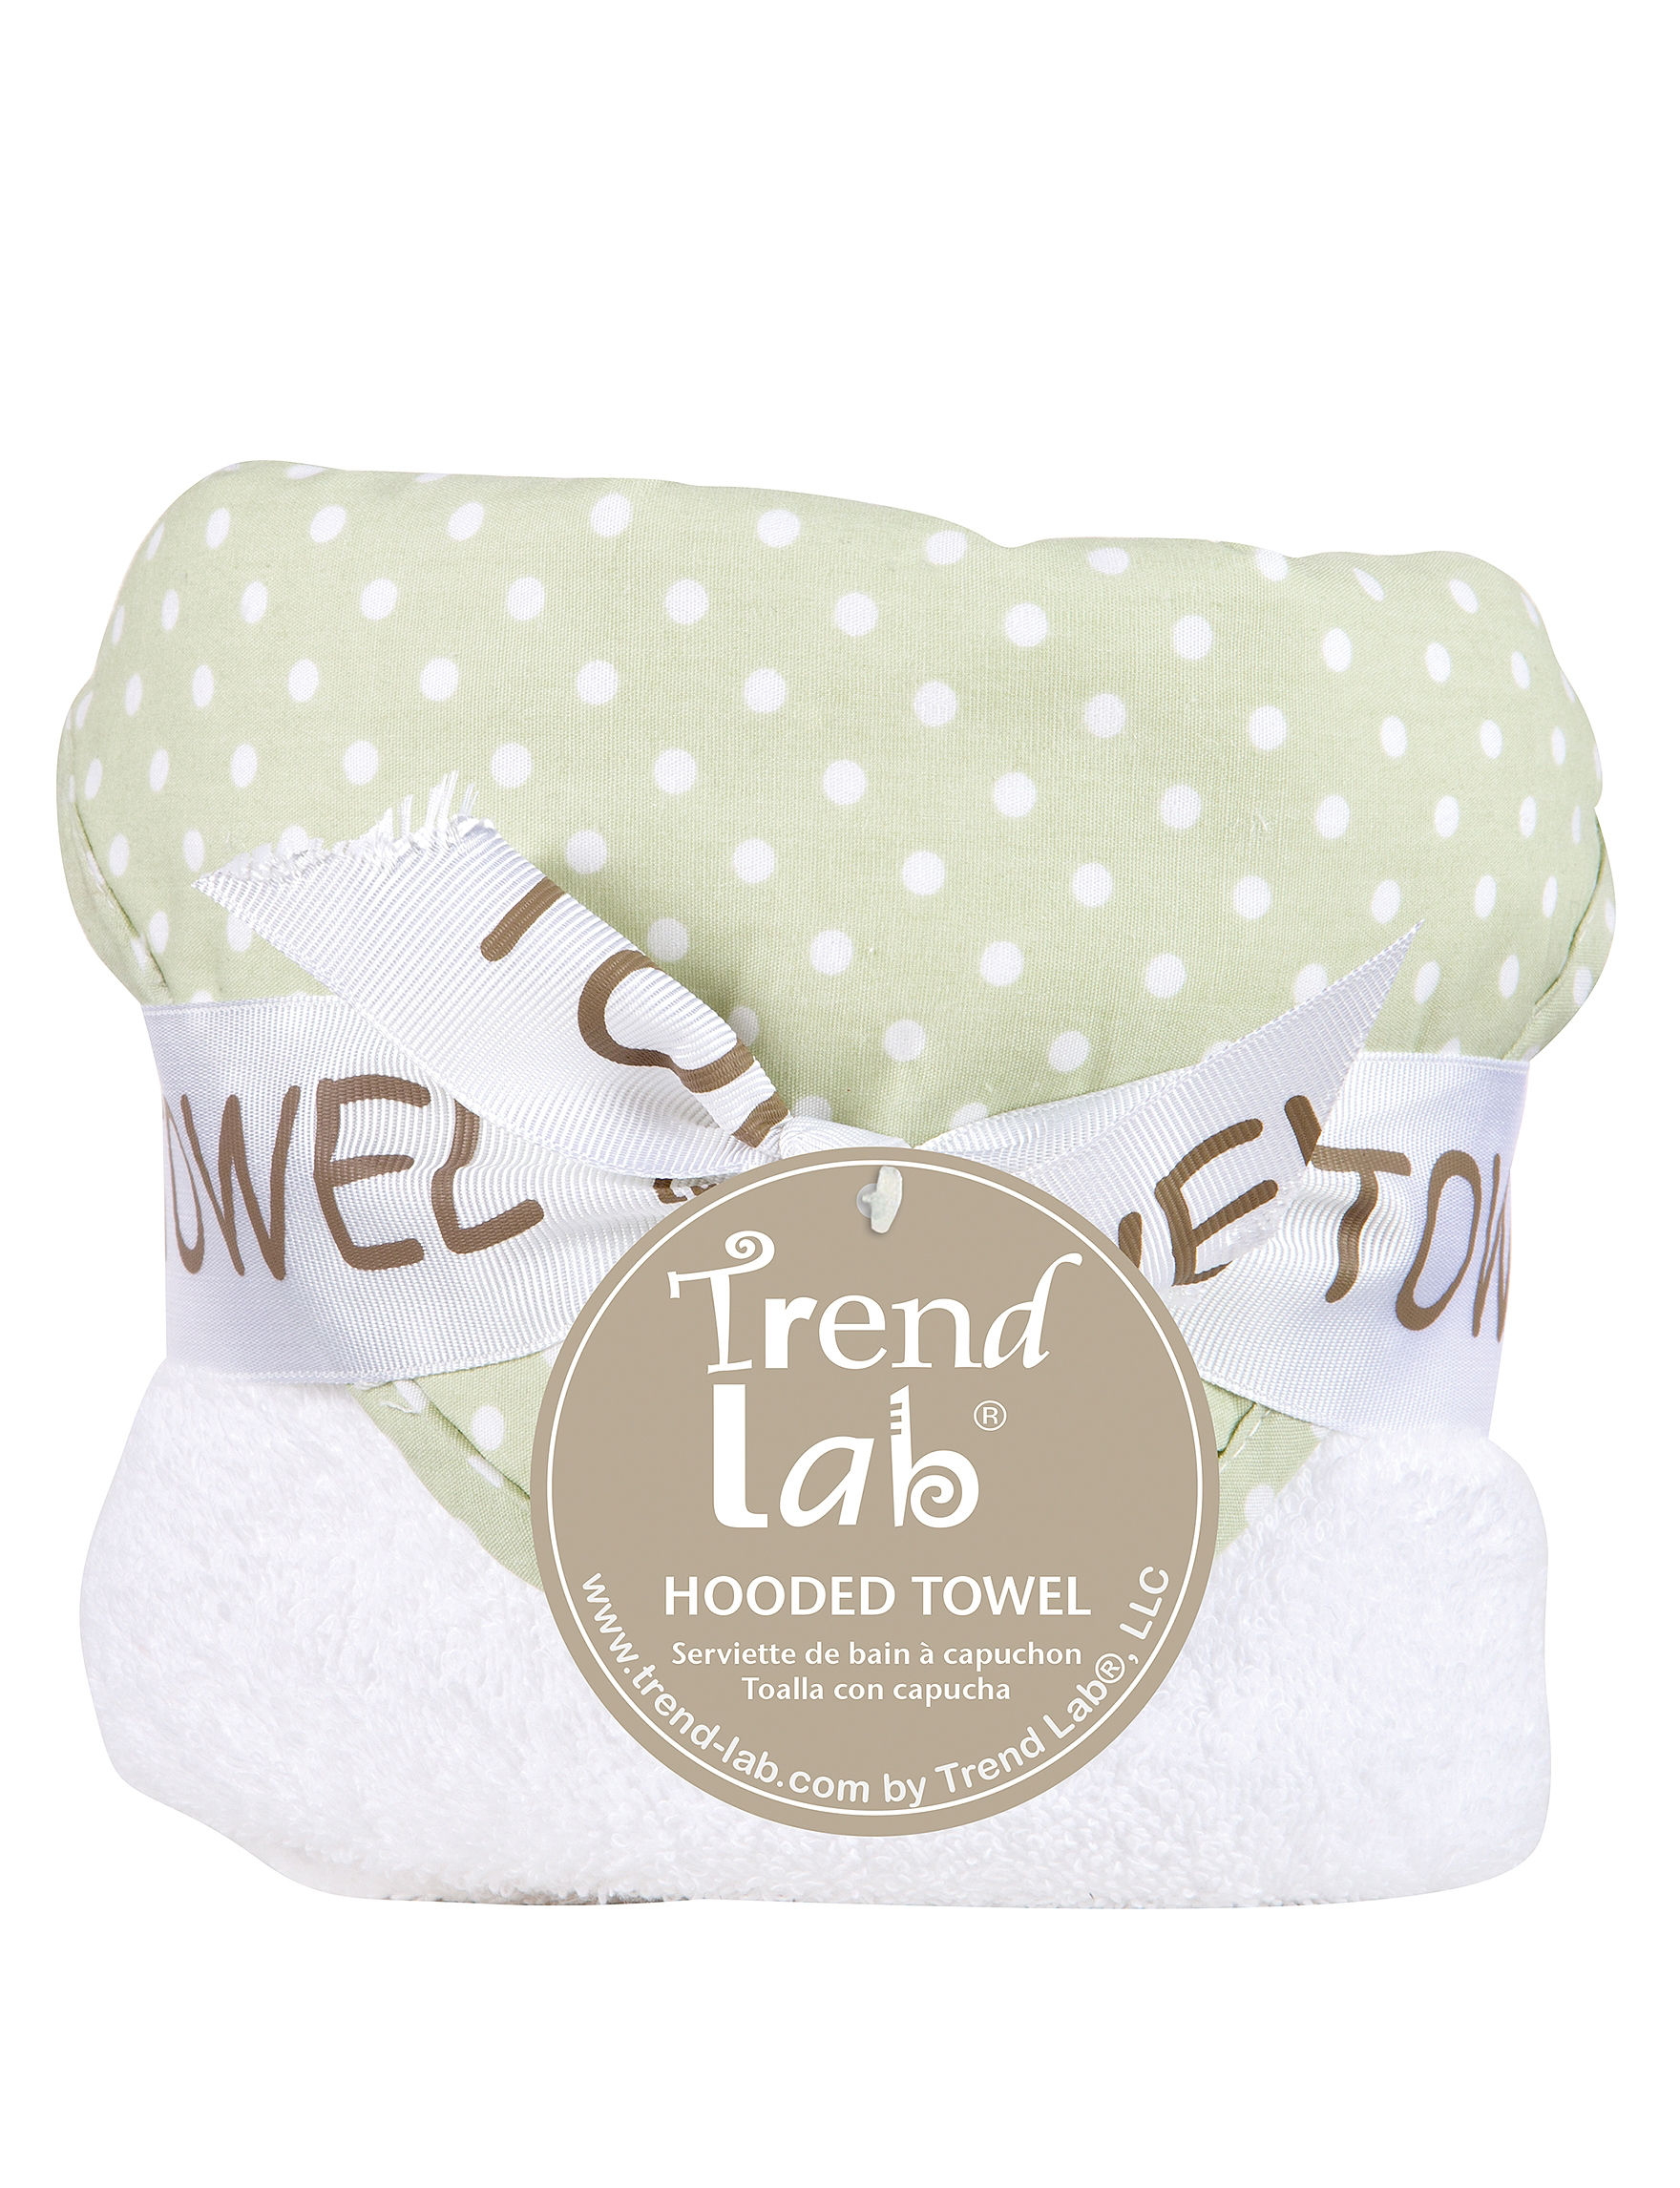 Trend Lab Green / White Hooded Towels